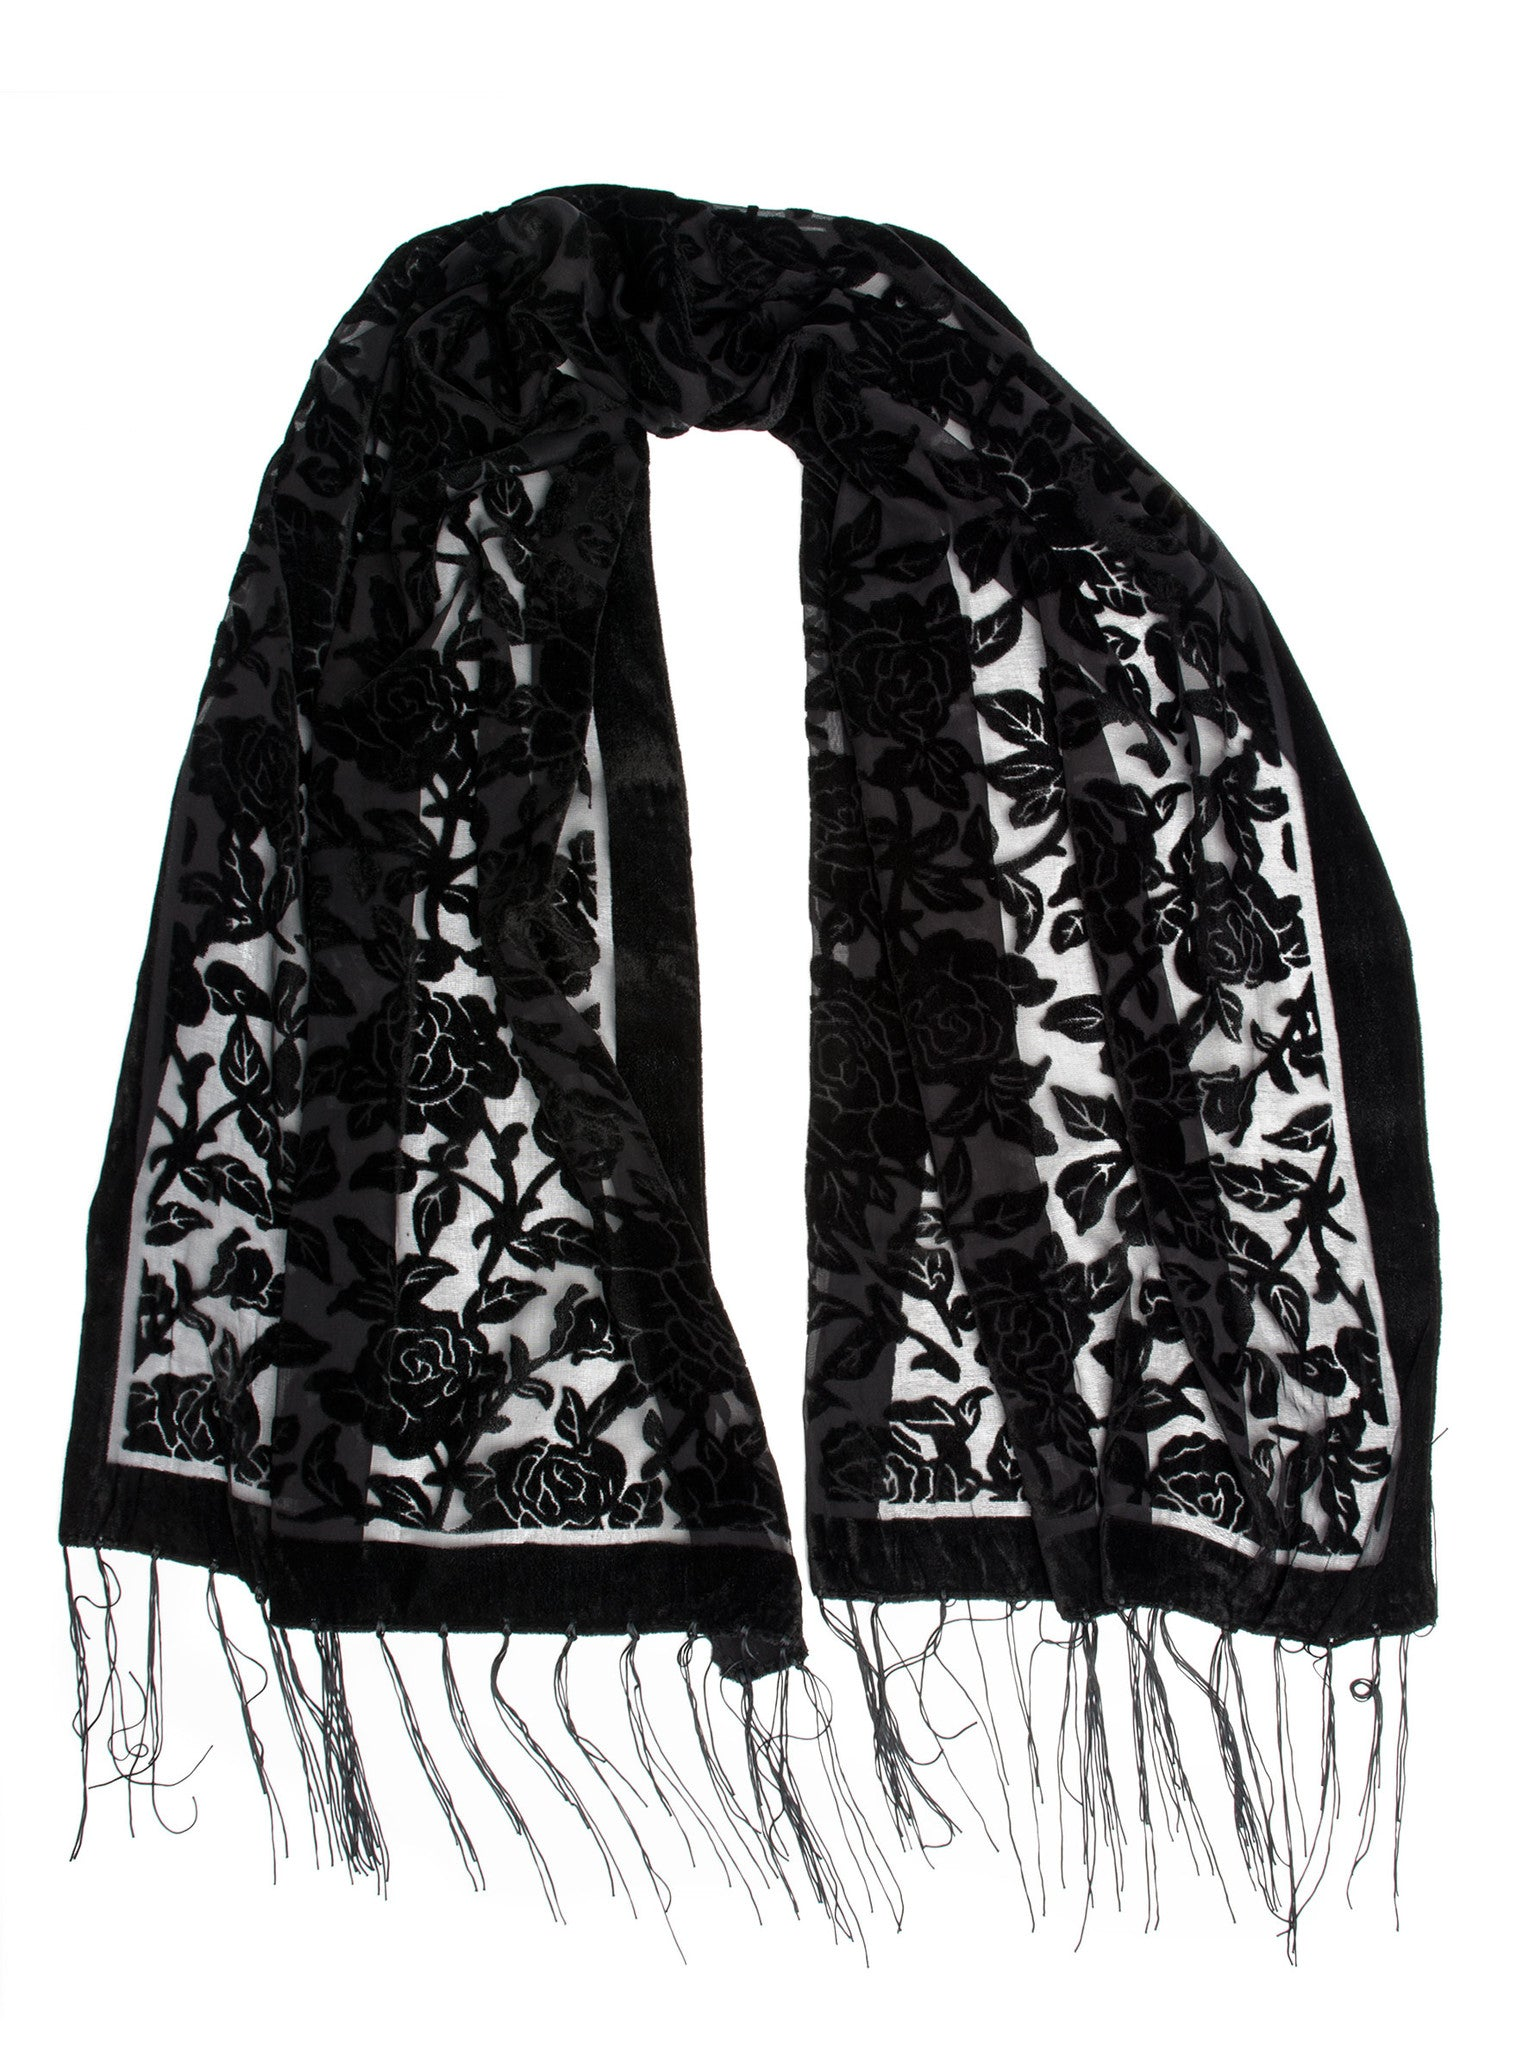 Scarves - Beatrice Scarf, Floral Burnout Fringe Scarf, Rose Print Silk Shawl -(Black / One Size) Bohomonde  - 6